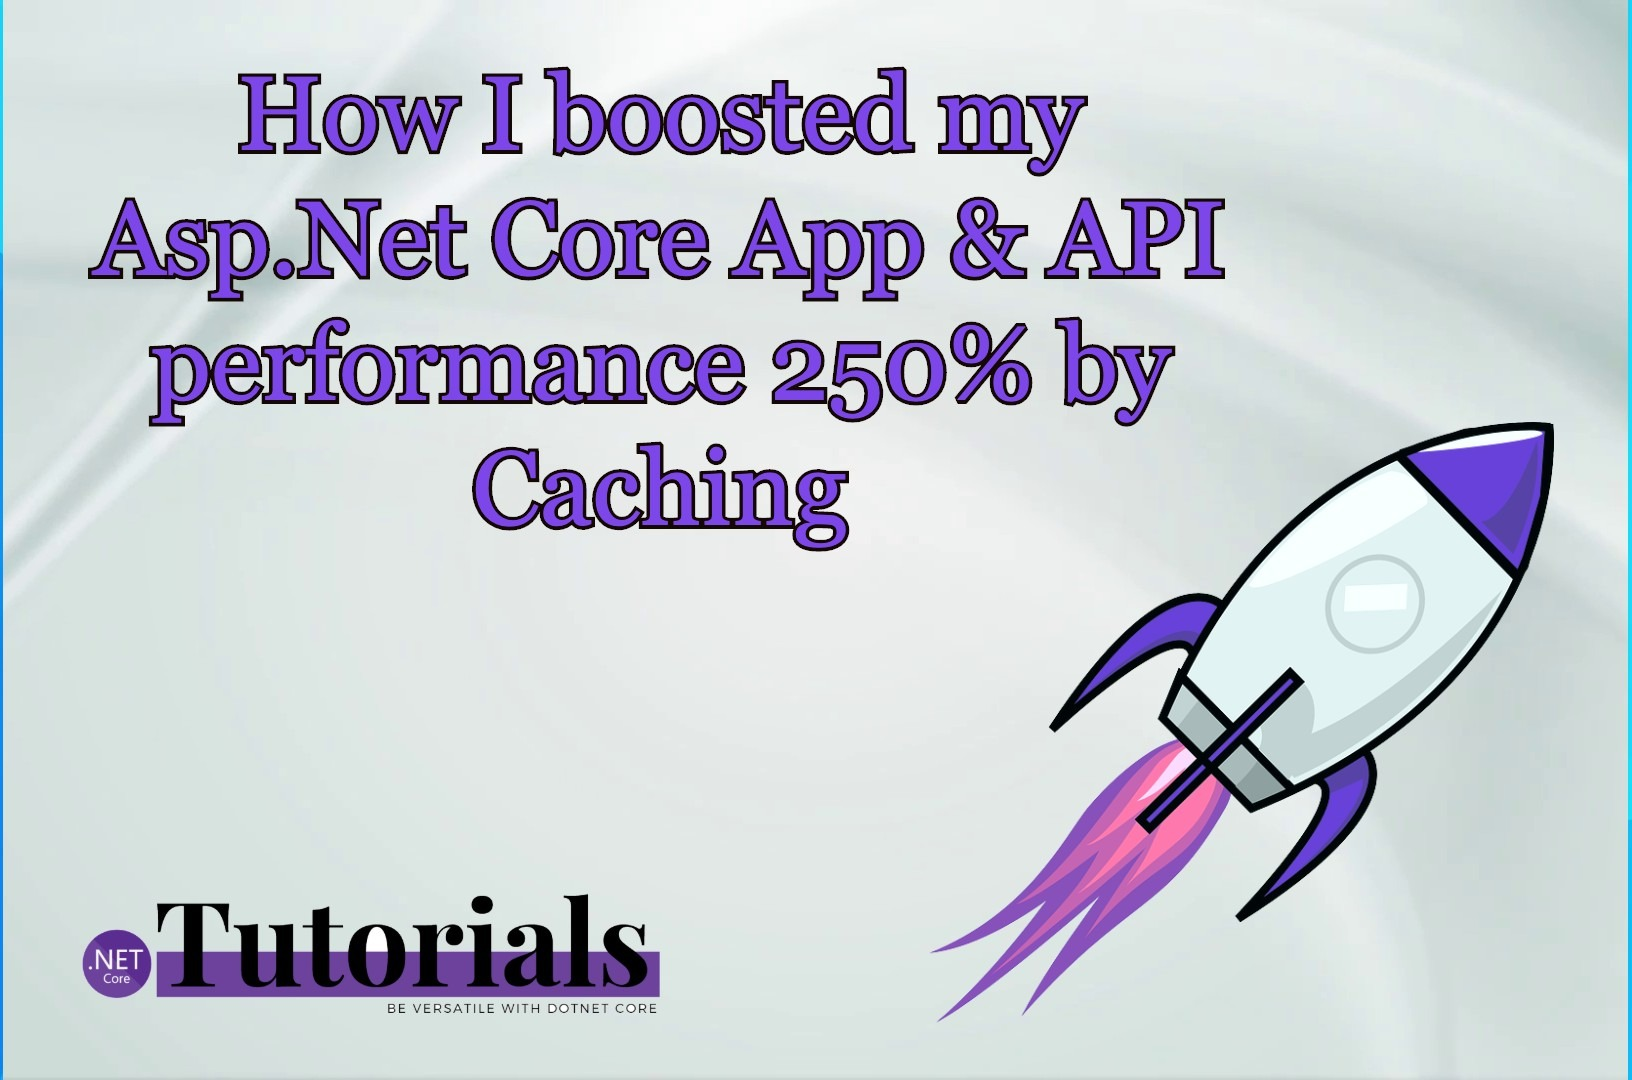 I boosted my Asp Net Core App & API performance 250% by Caching